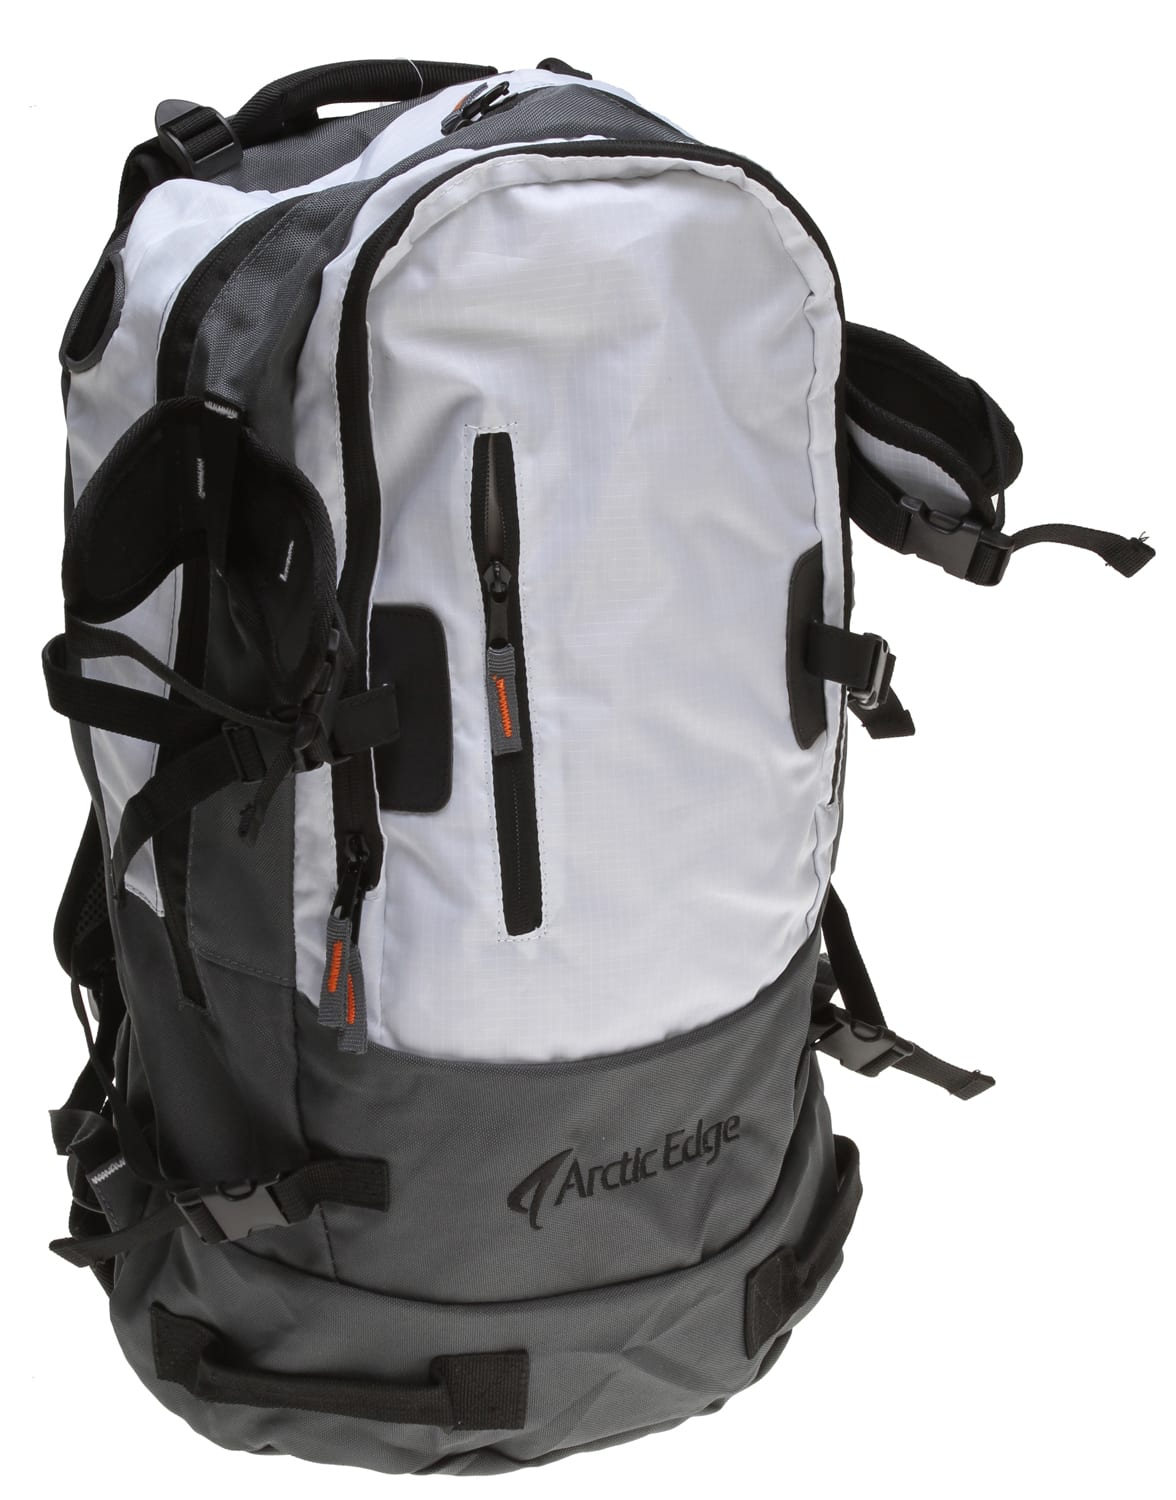 On Sale Arctic Edge Backpacks - Hiking, Snowboard Backpack